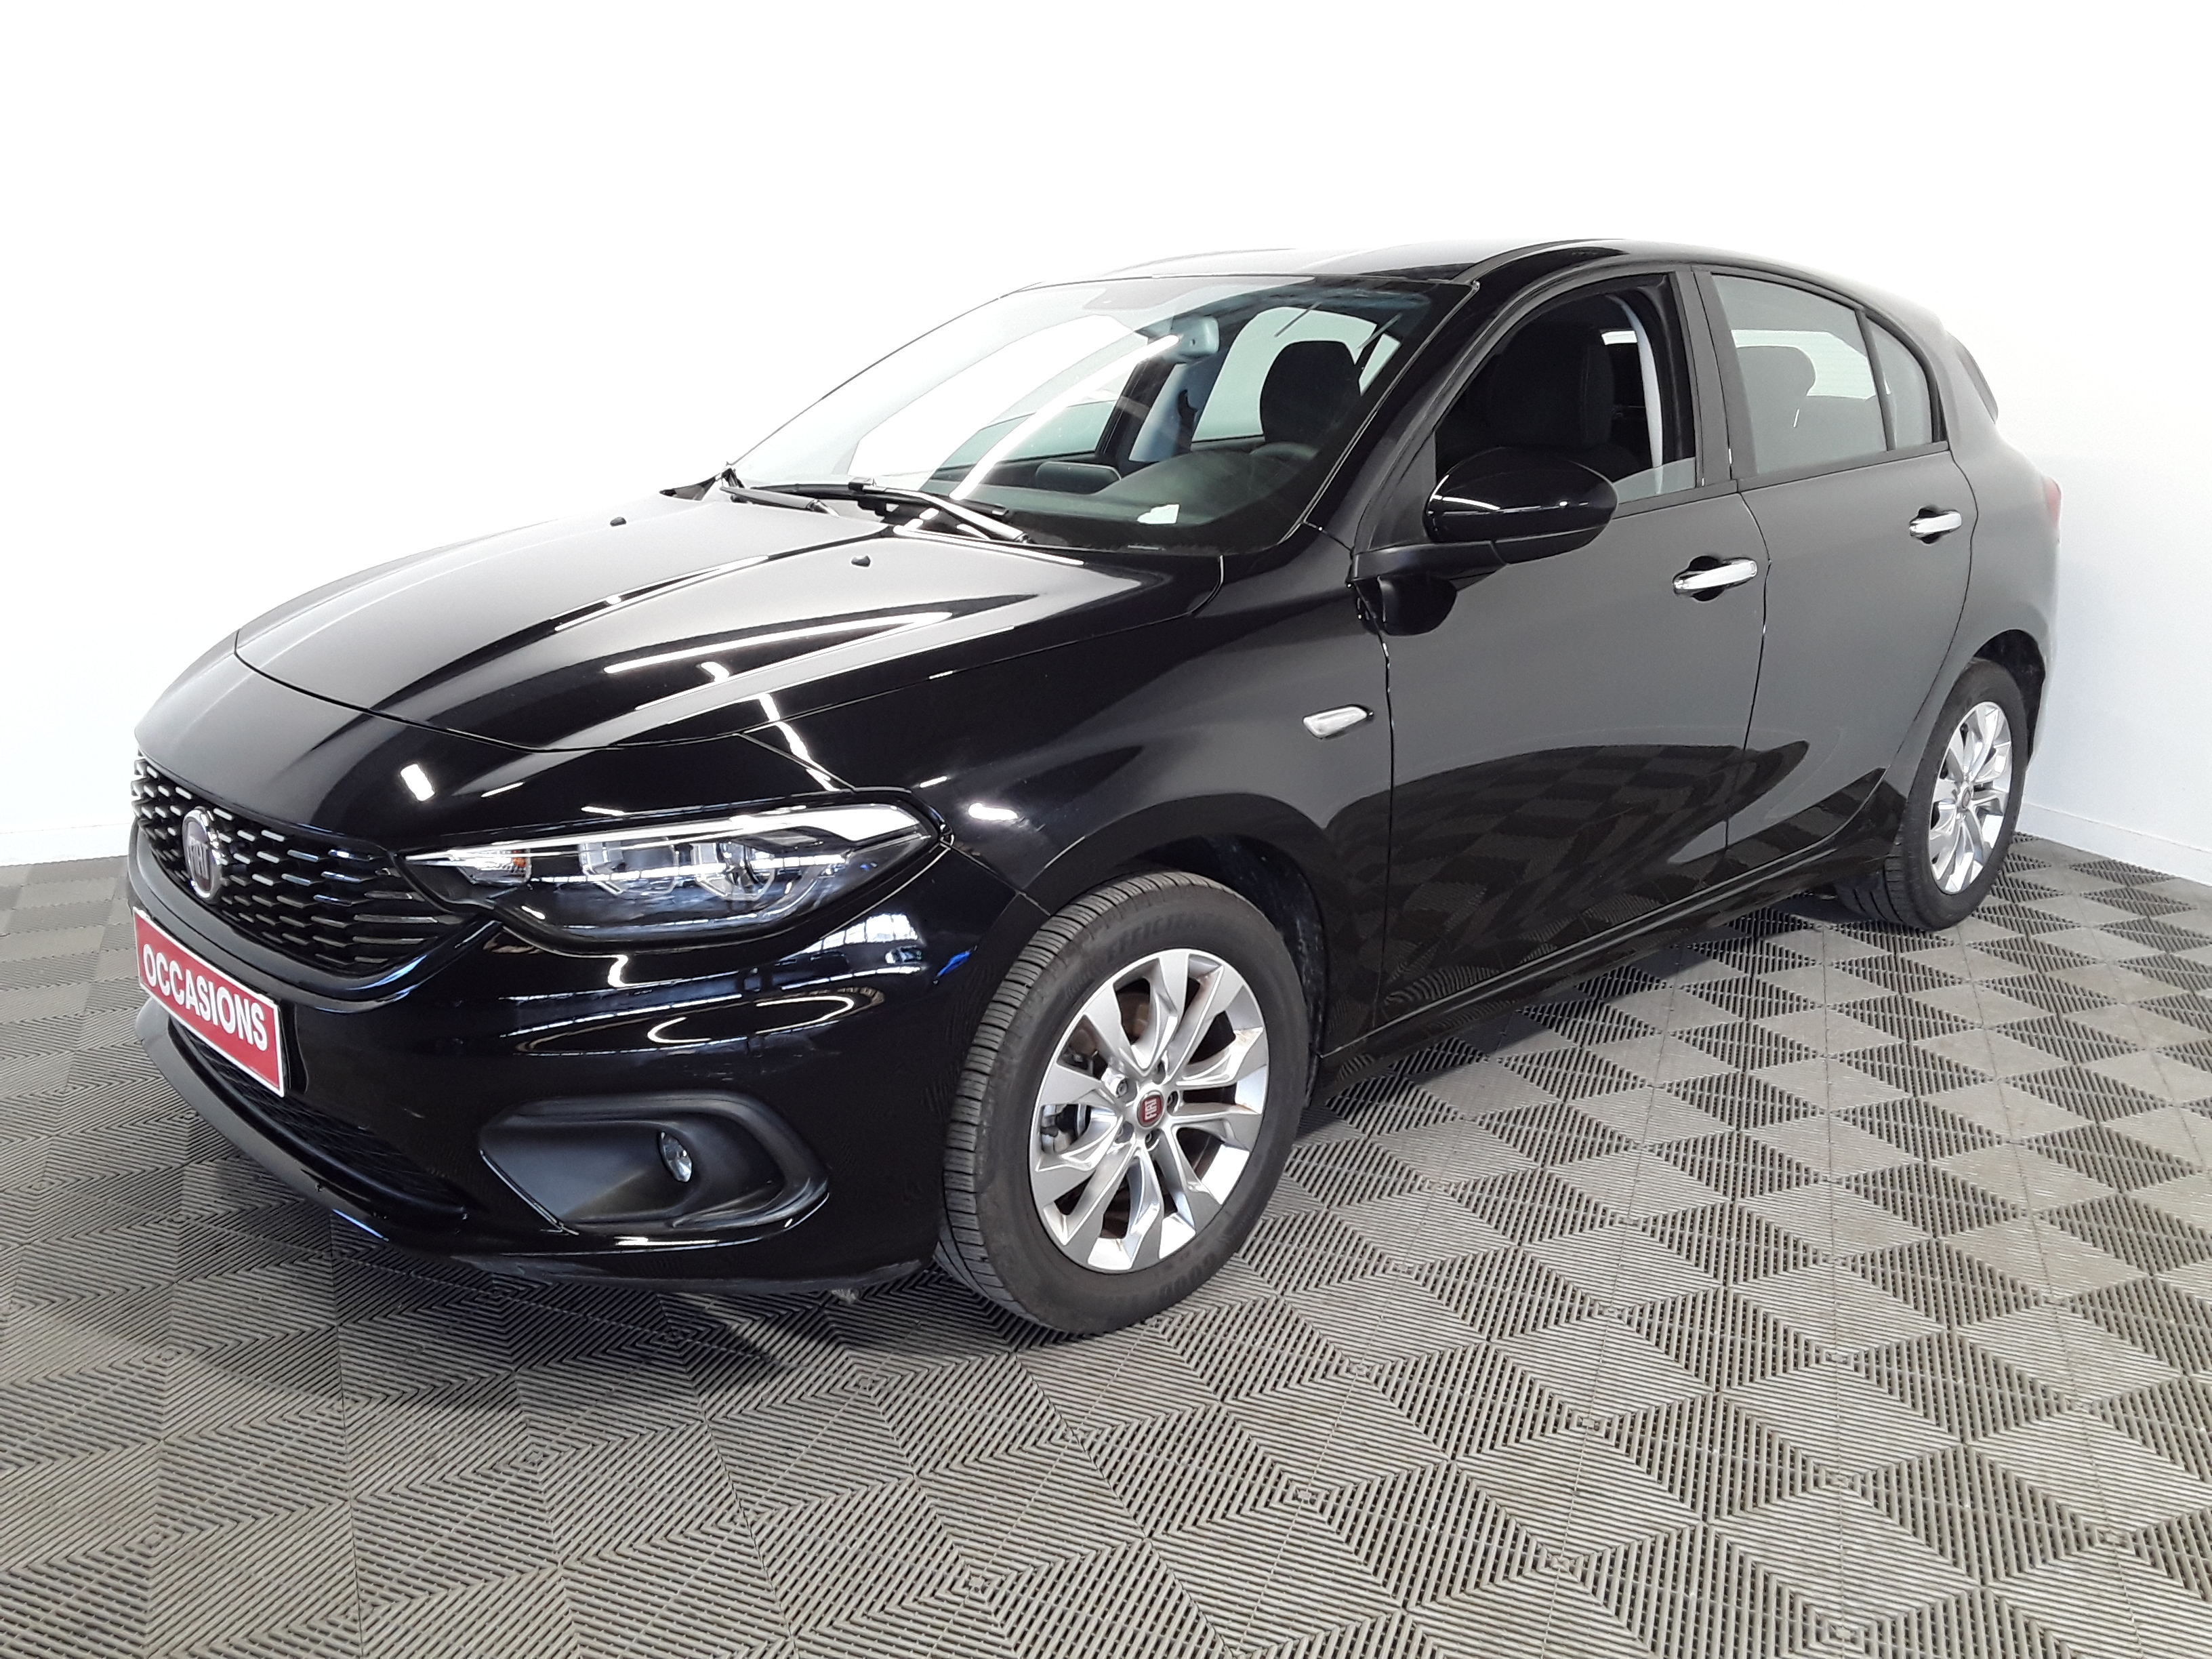 FIAT TIPO 5 PORTES 95 ch Easy MY19 - 5P d'occasion